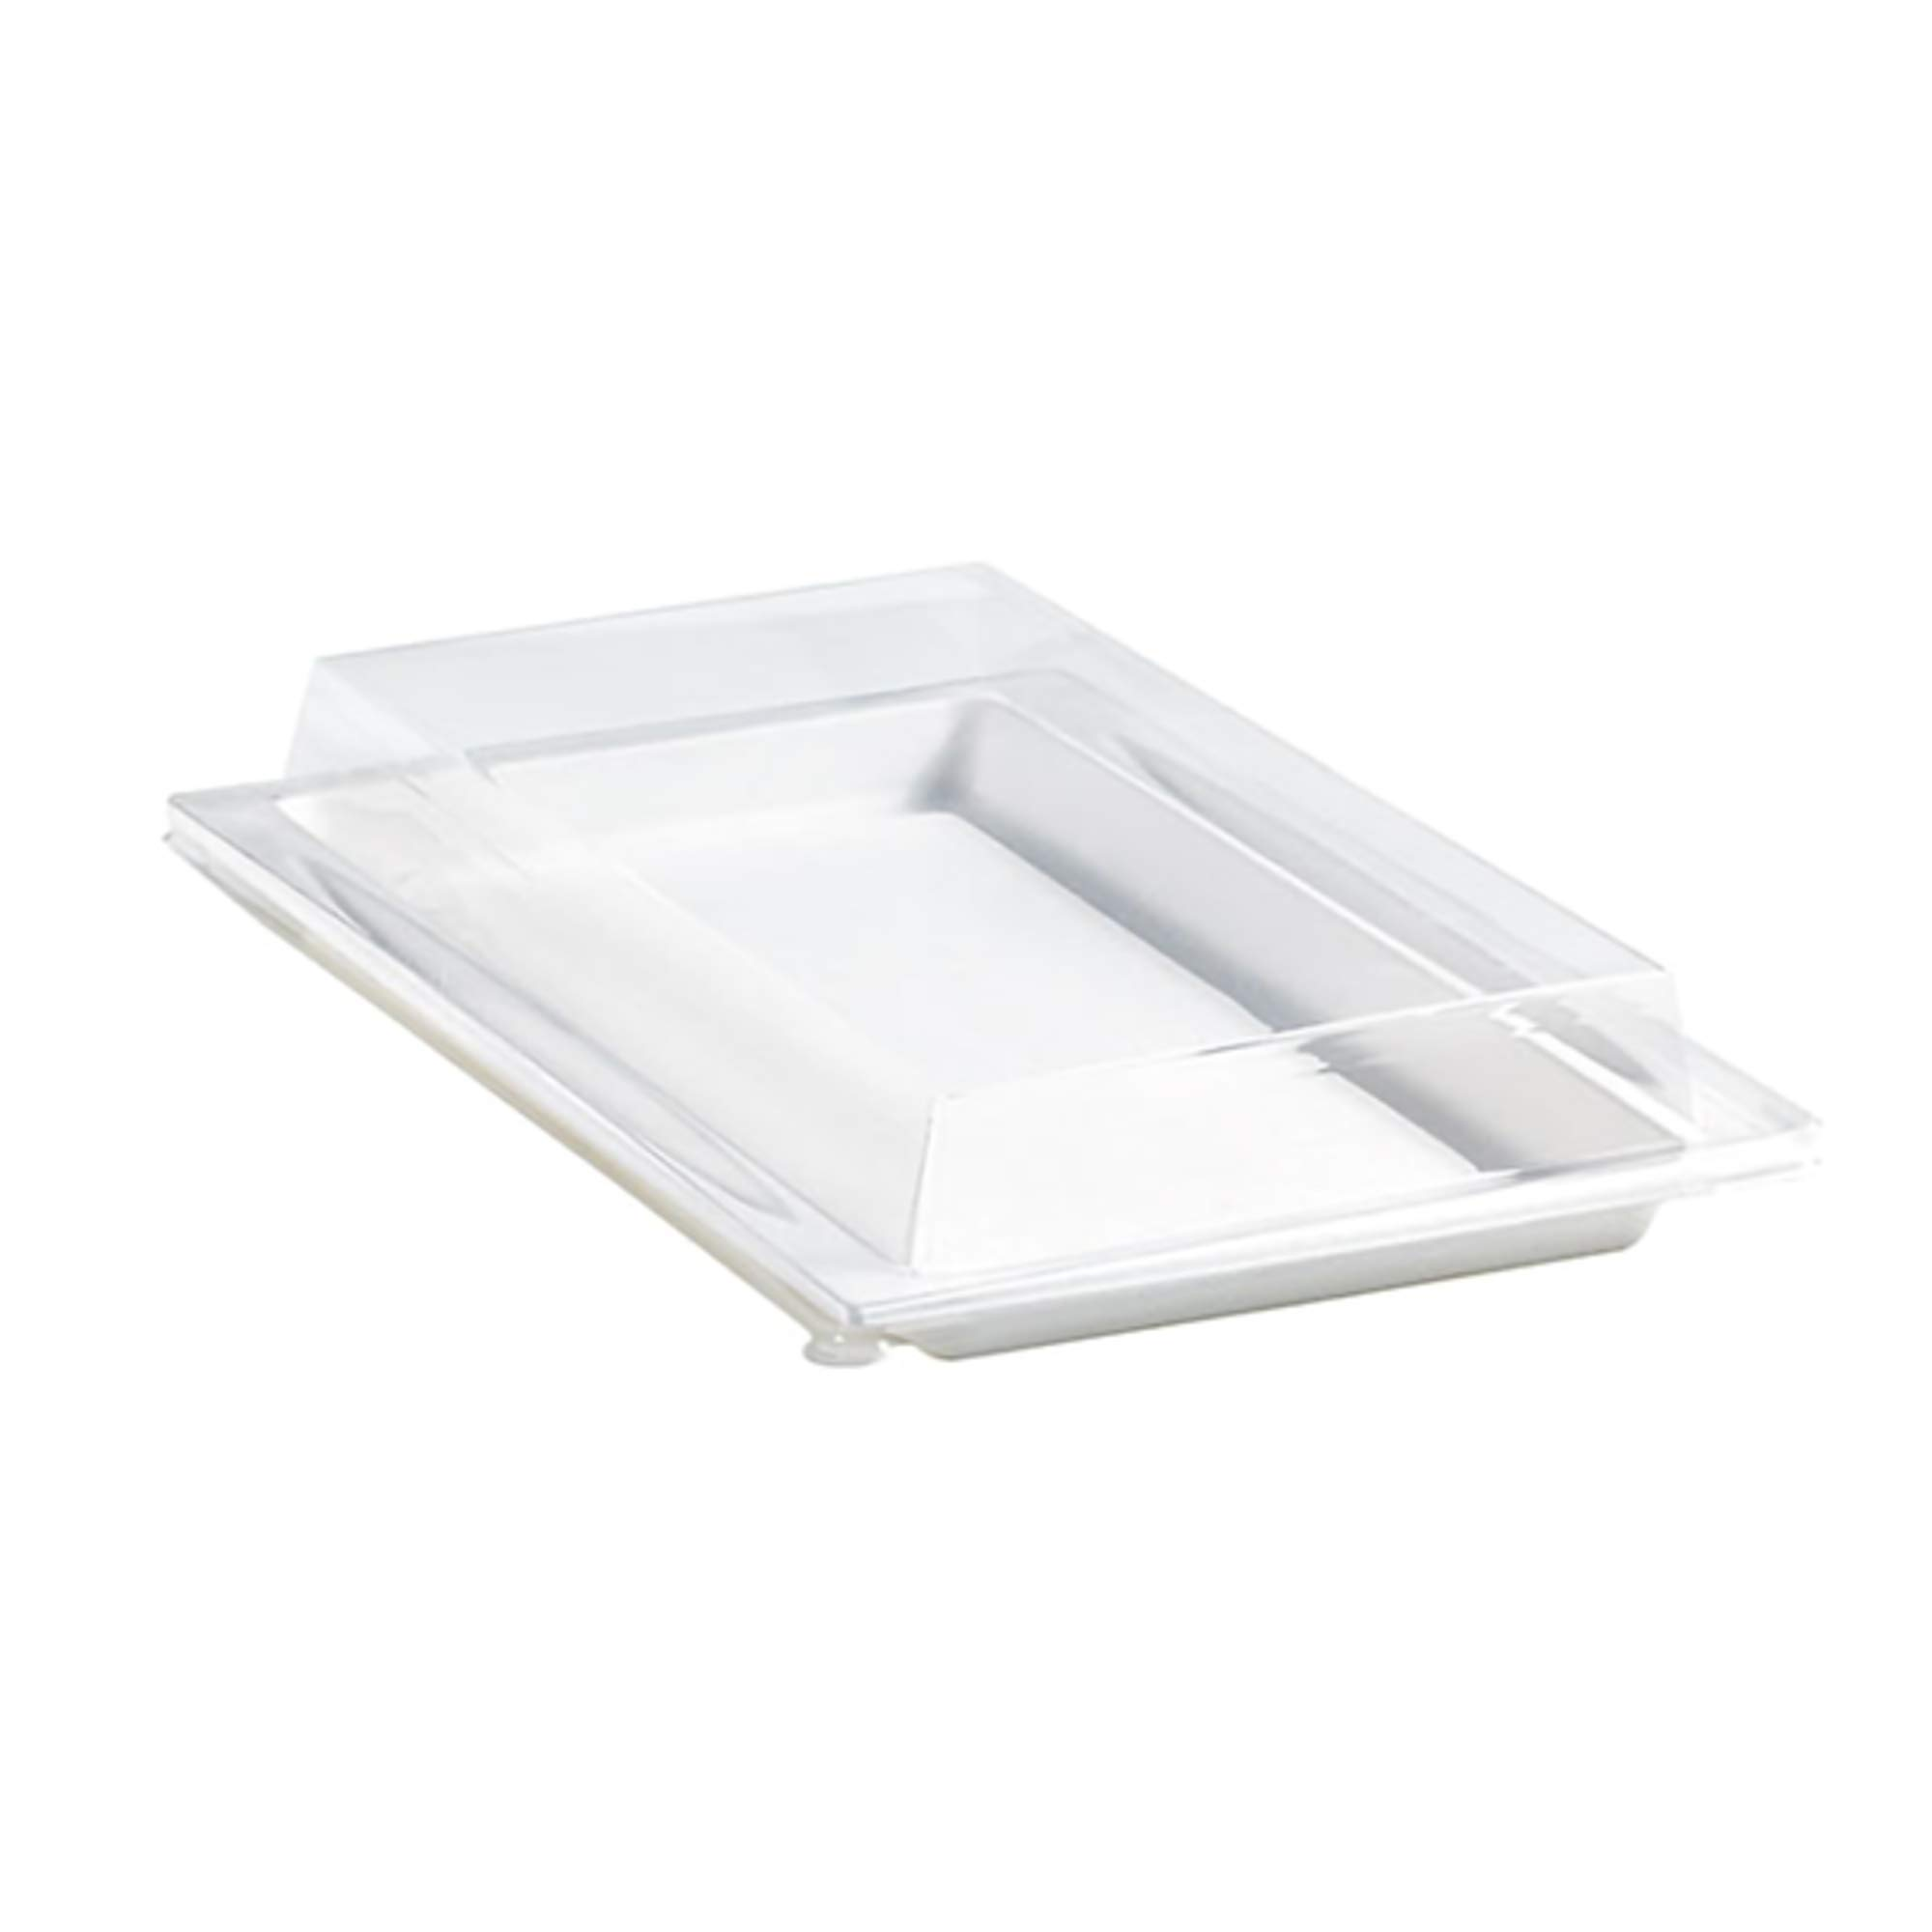 """Clear Plastic Lid (Case of 100), PacknWood - Recyclable Tray Cover for (210APUTRP12) Sugarcane Trays (10.6"""" x 7.6"""") 210APUTRPL13"""